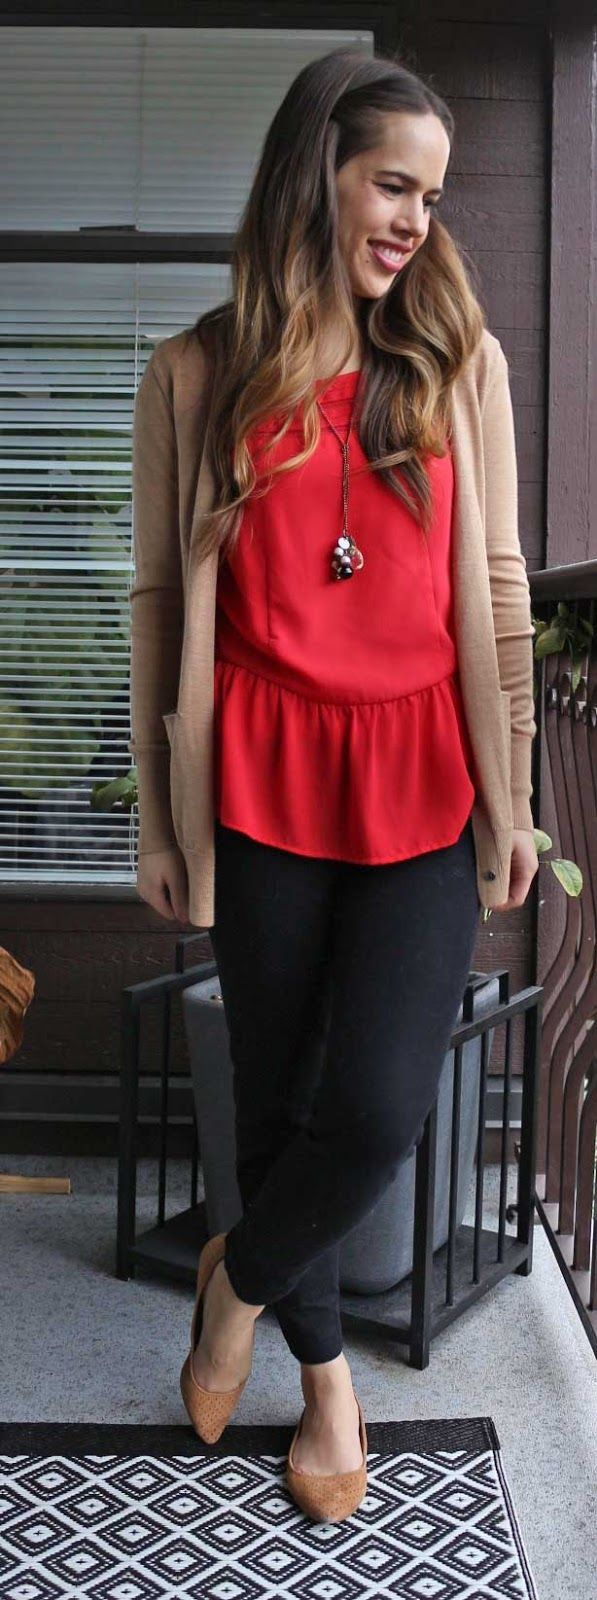 10 ways to wear a red top work outfit and look good